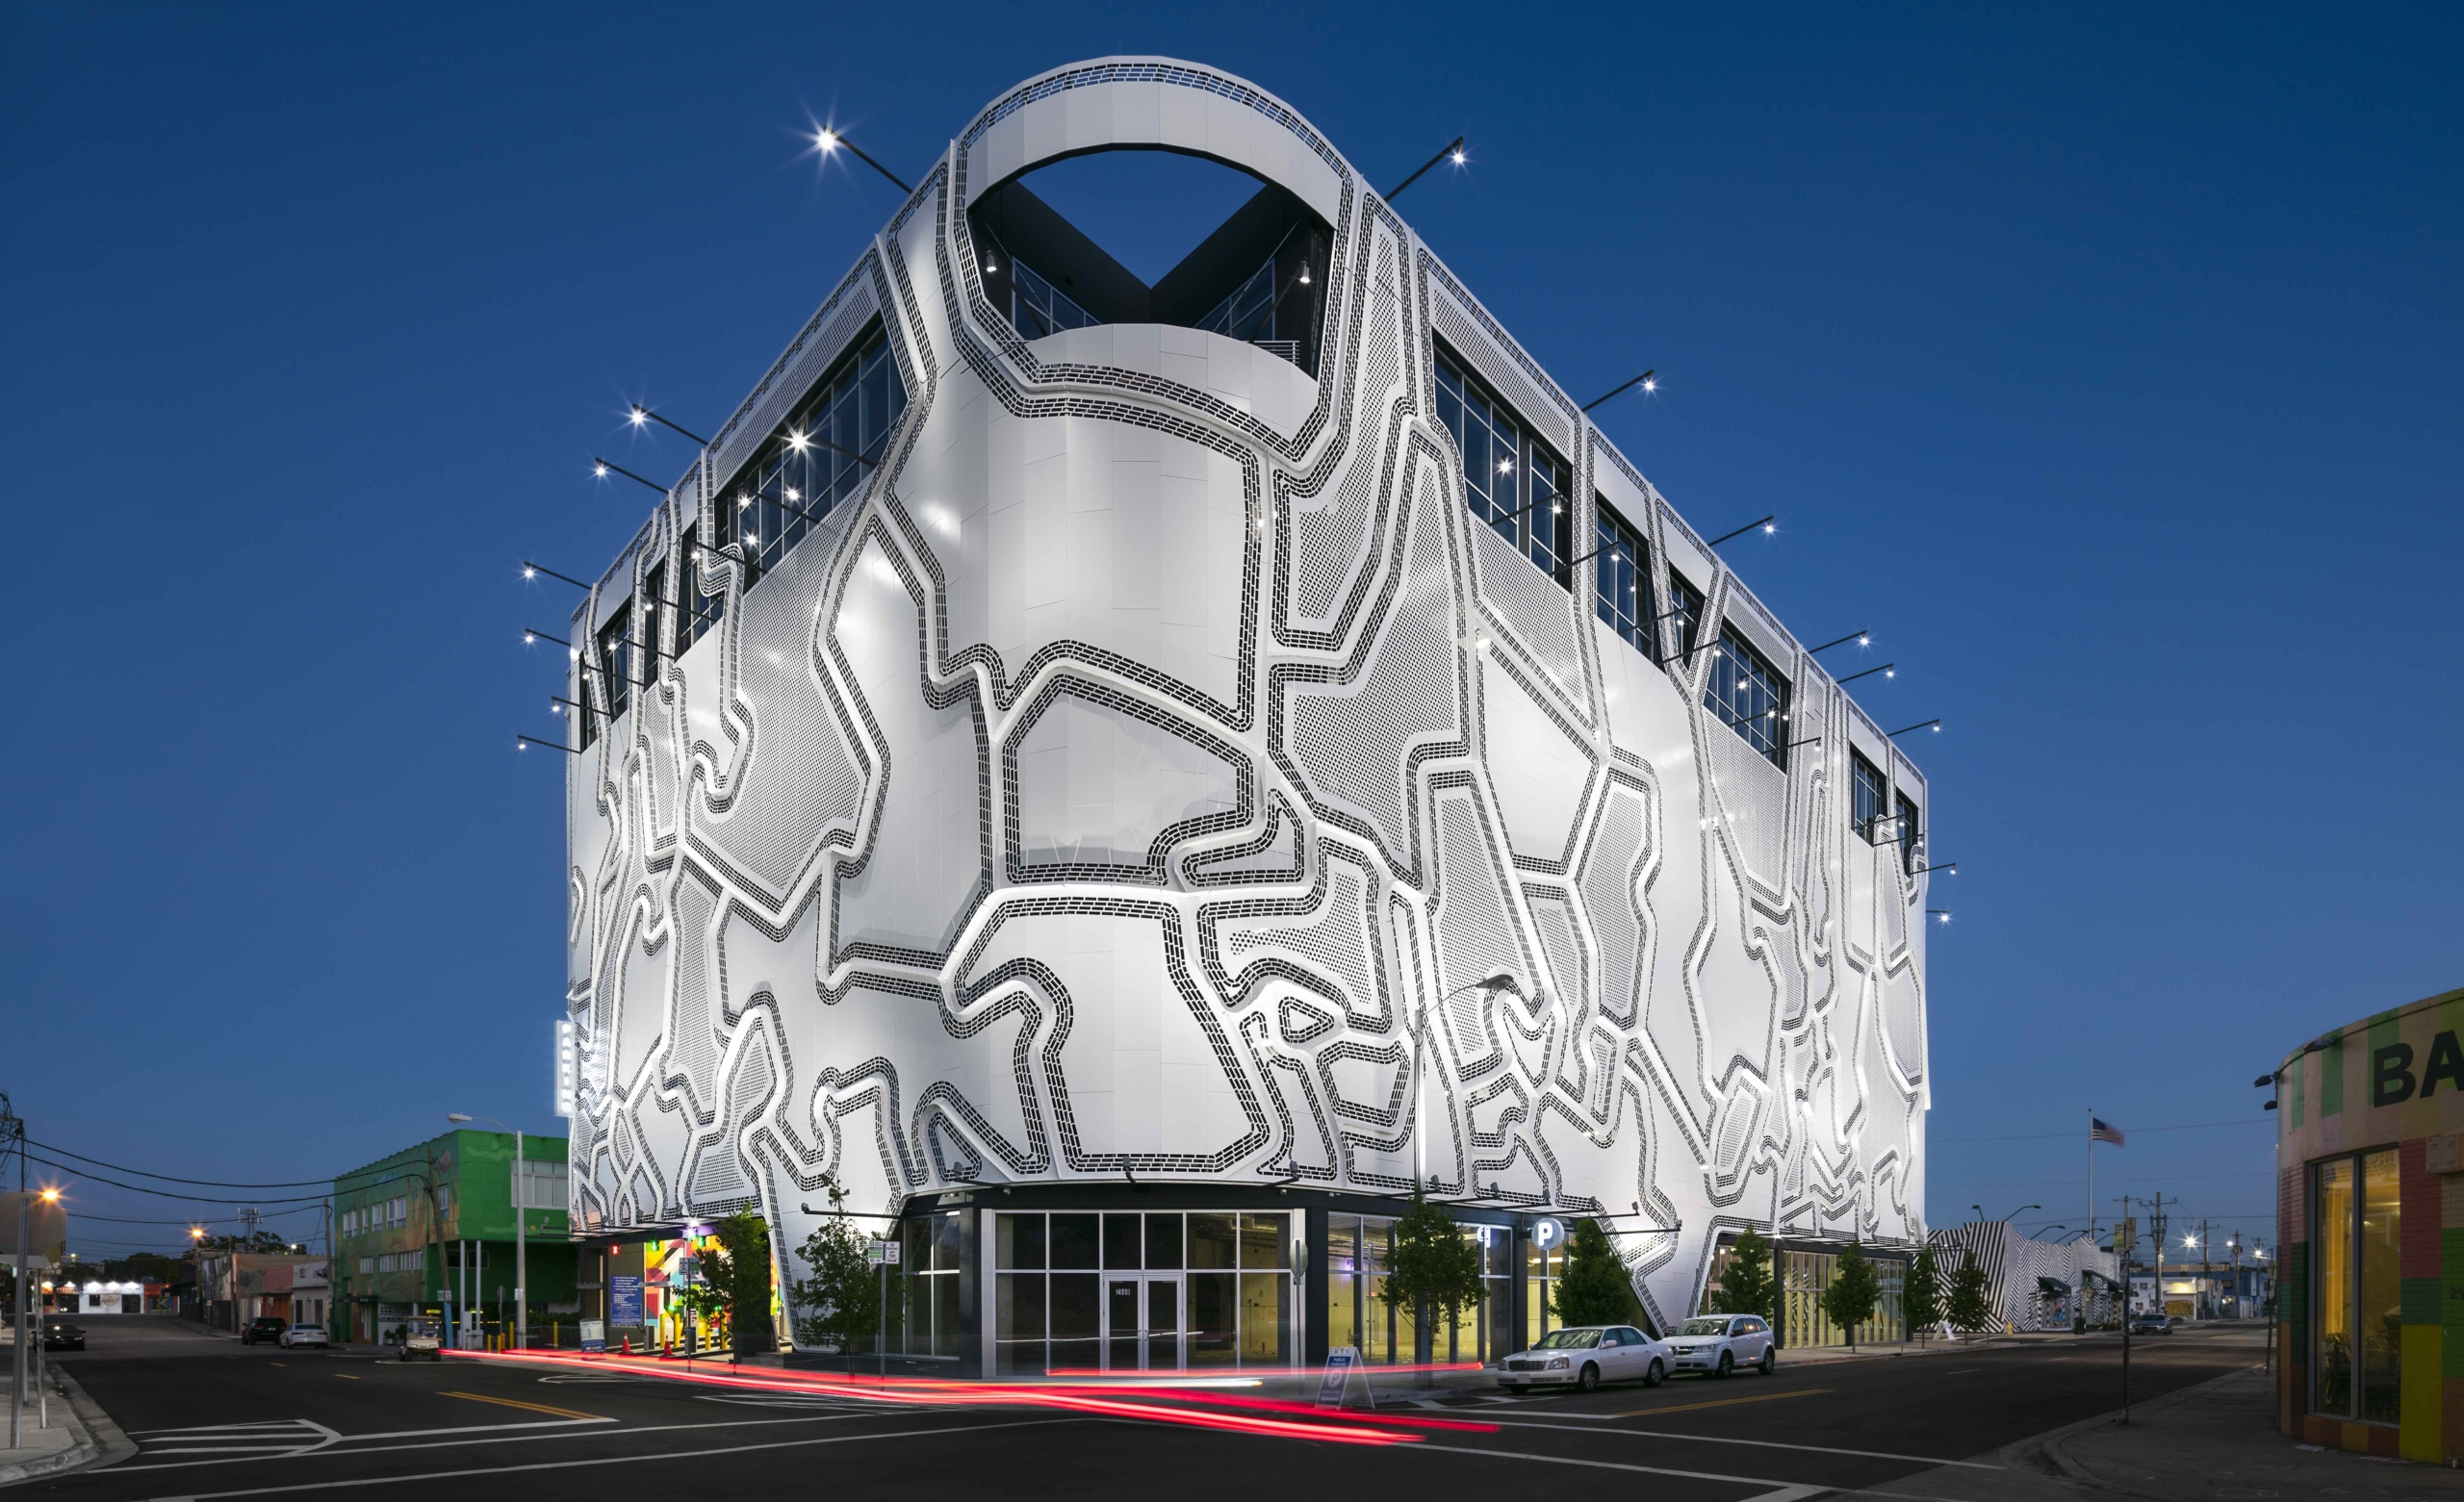 Exterior image of Wynwood Garage at night